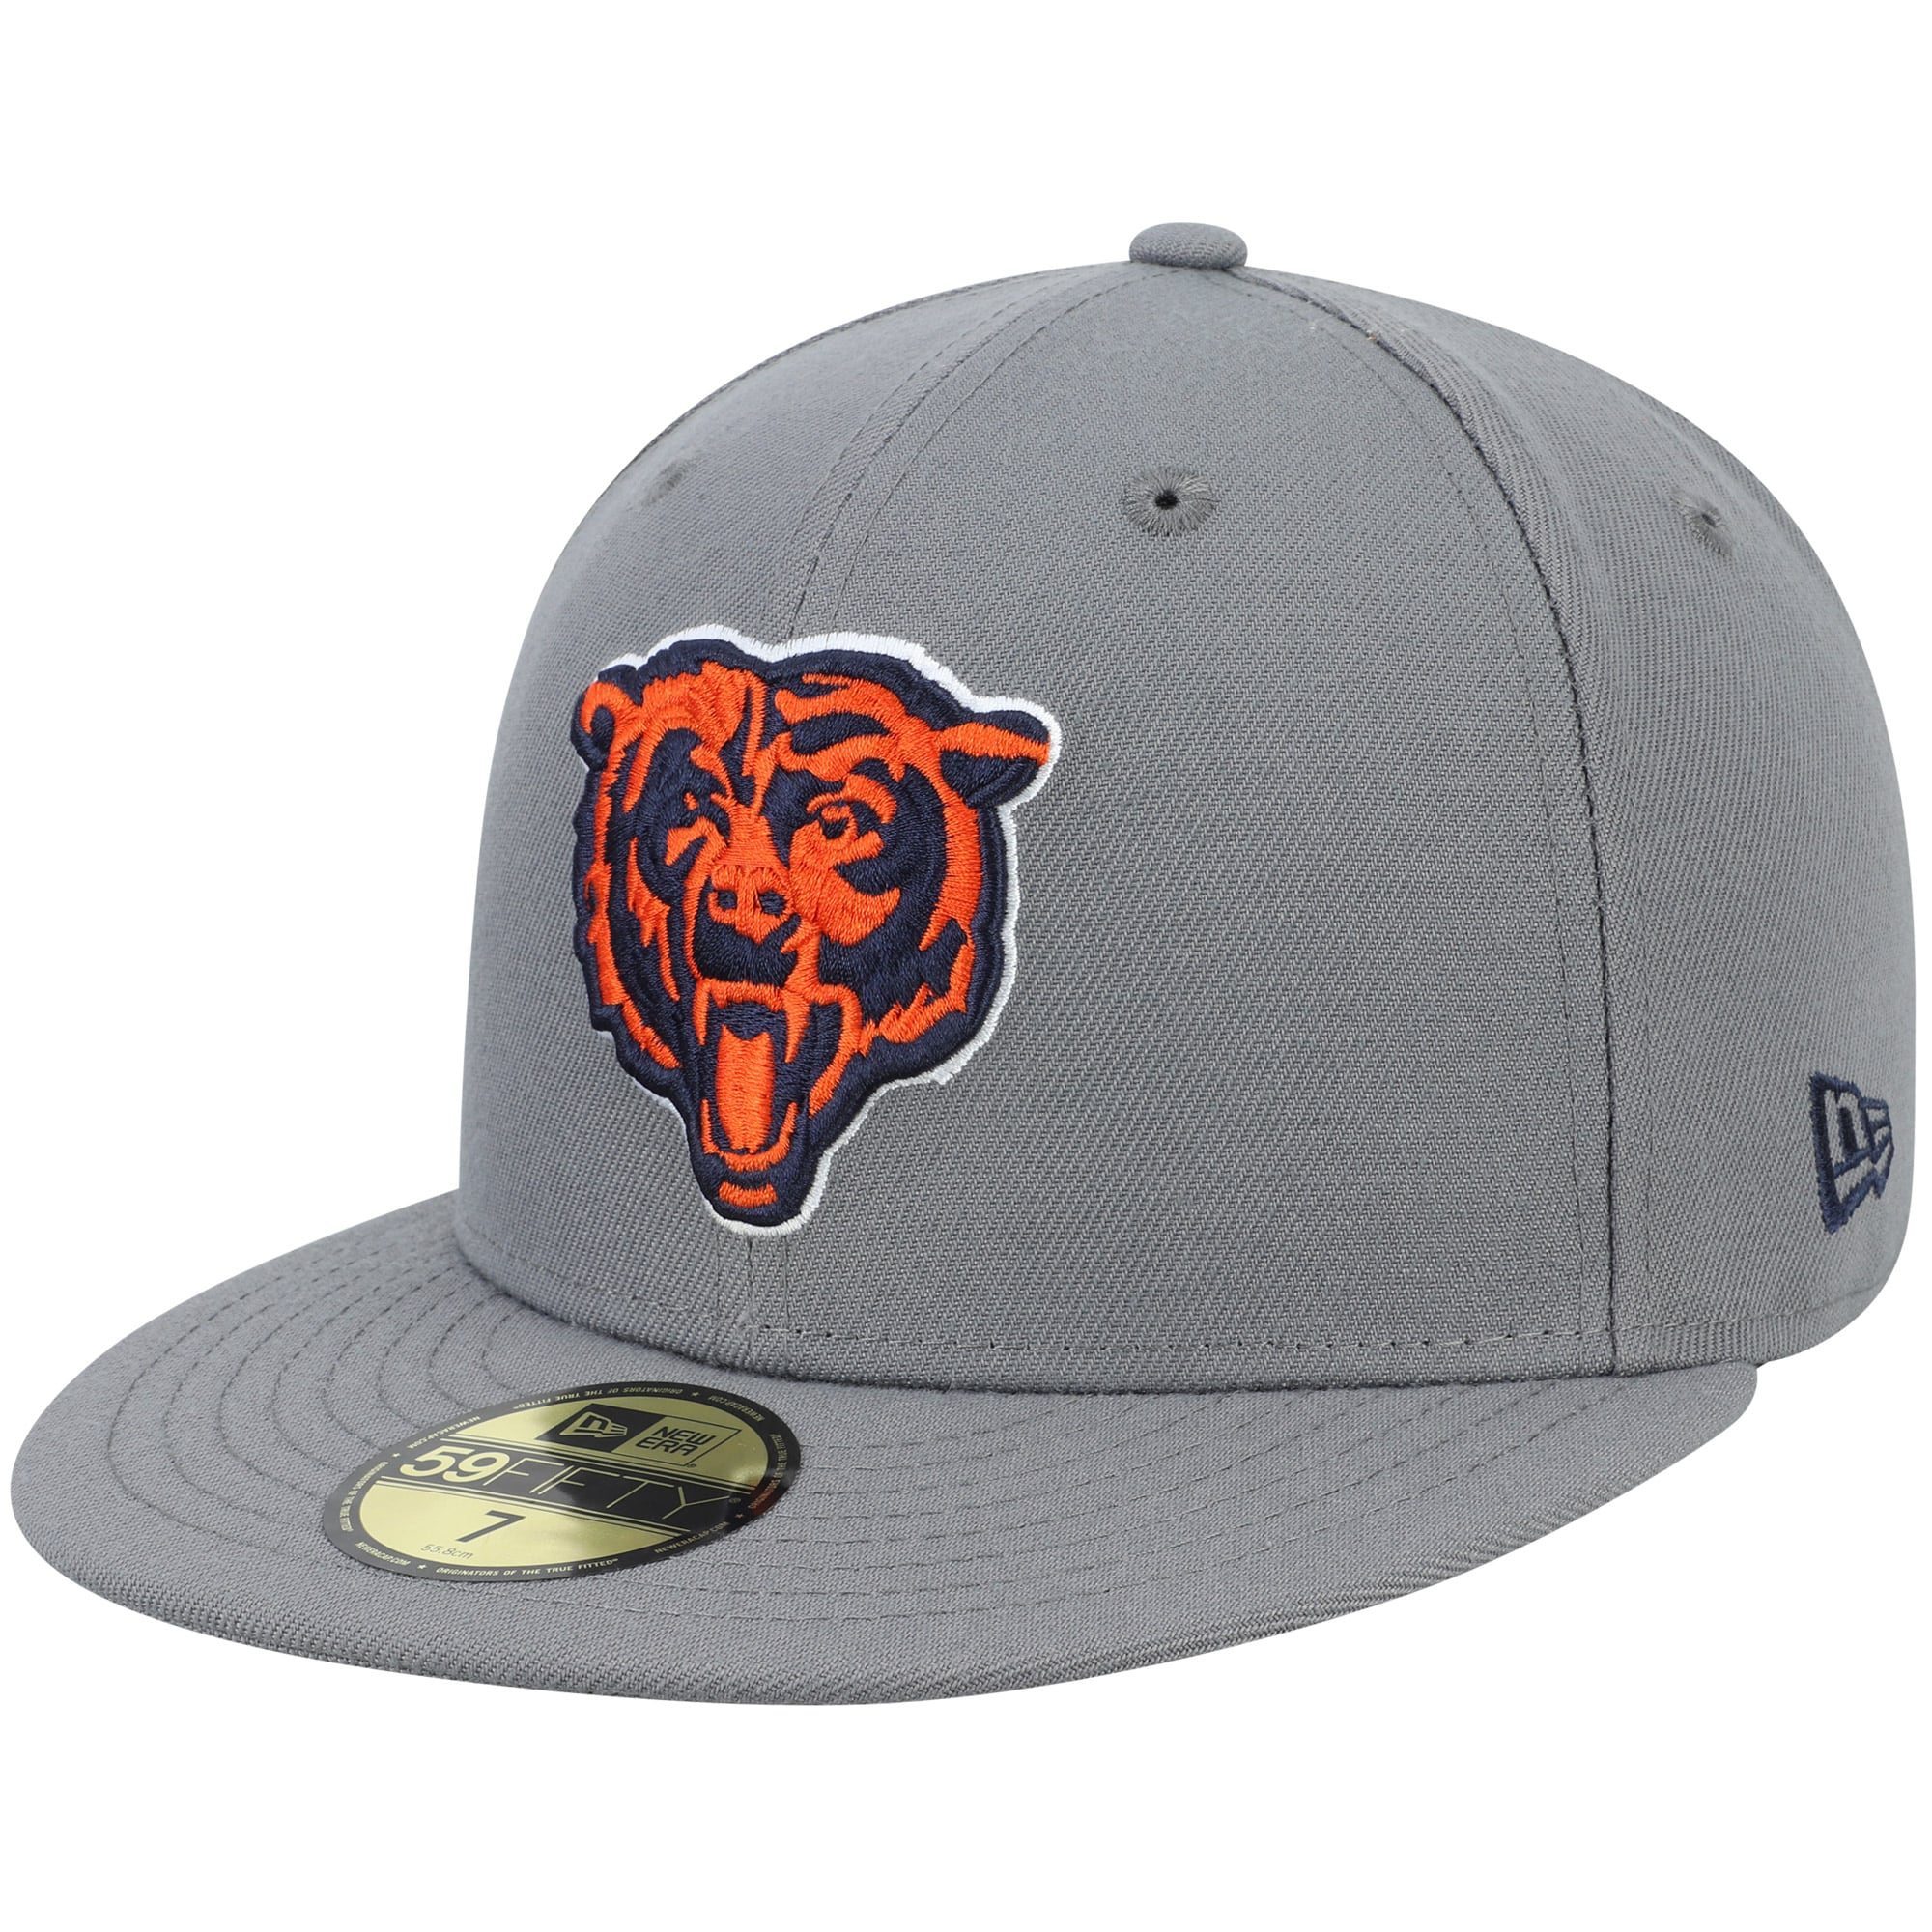 Chicago Bears New Era Alternate Logo Storm 59FIFTY Fitted Hat - Graphite